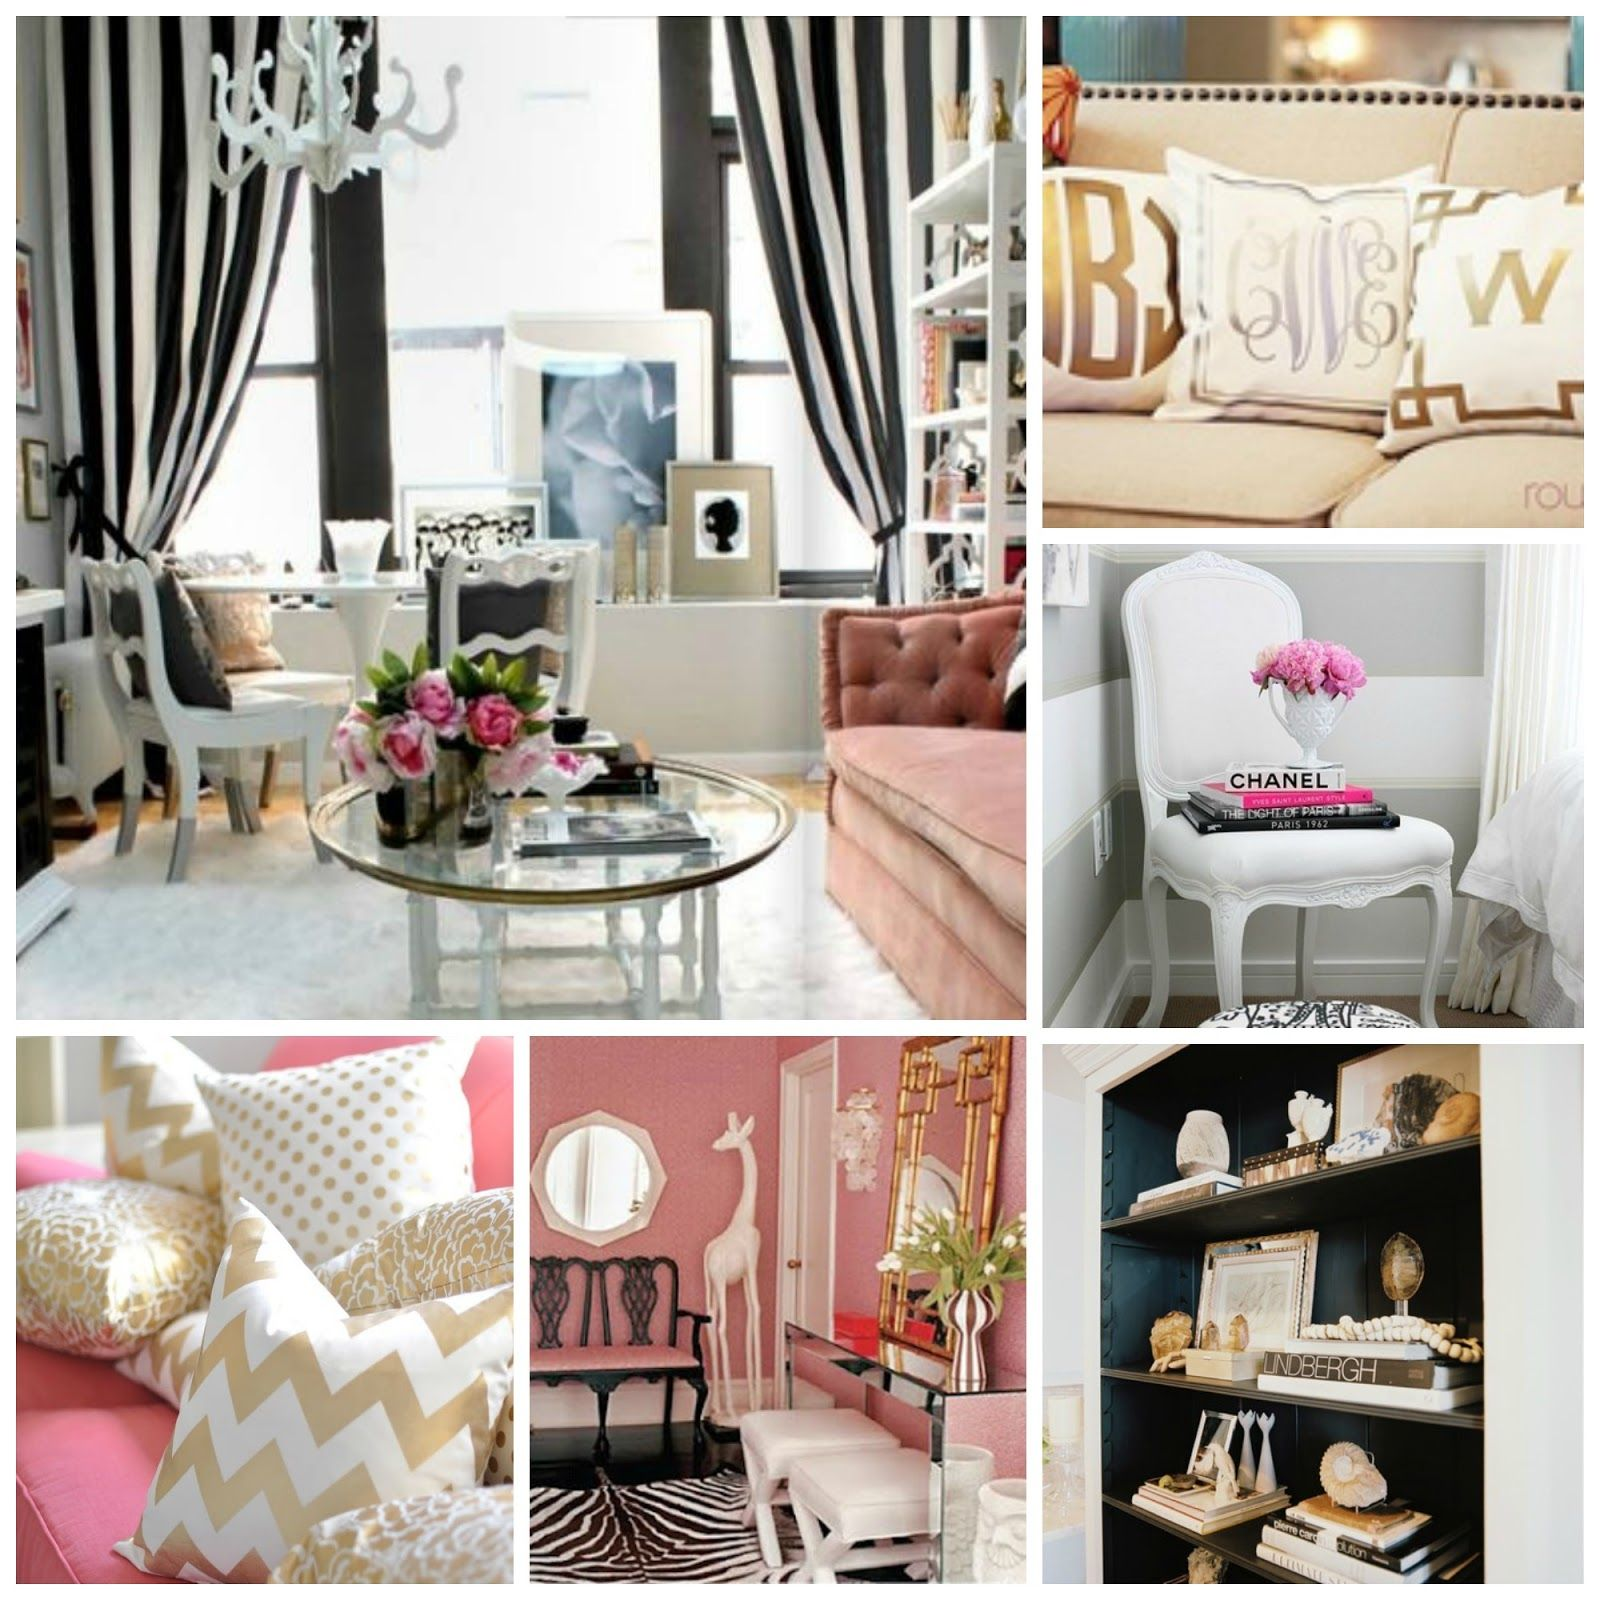 Love The Black White Pink And Gold Theme So Classic And Girly